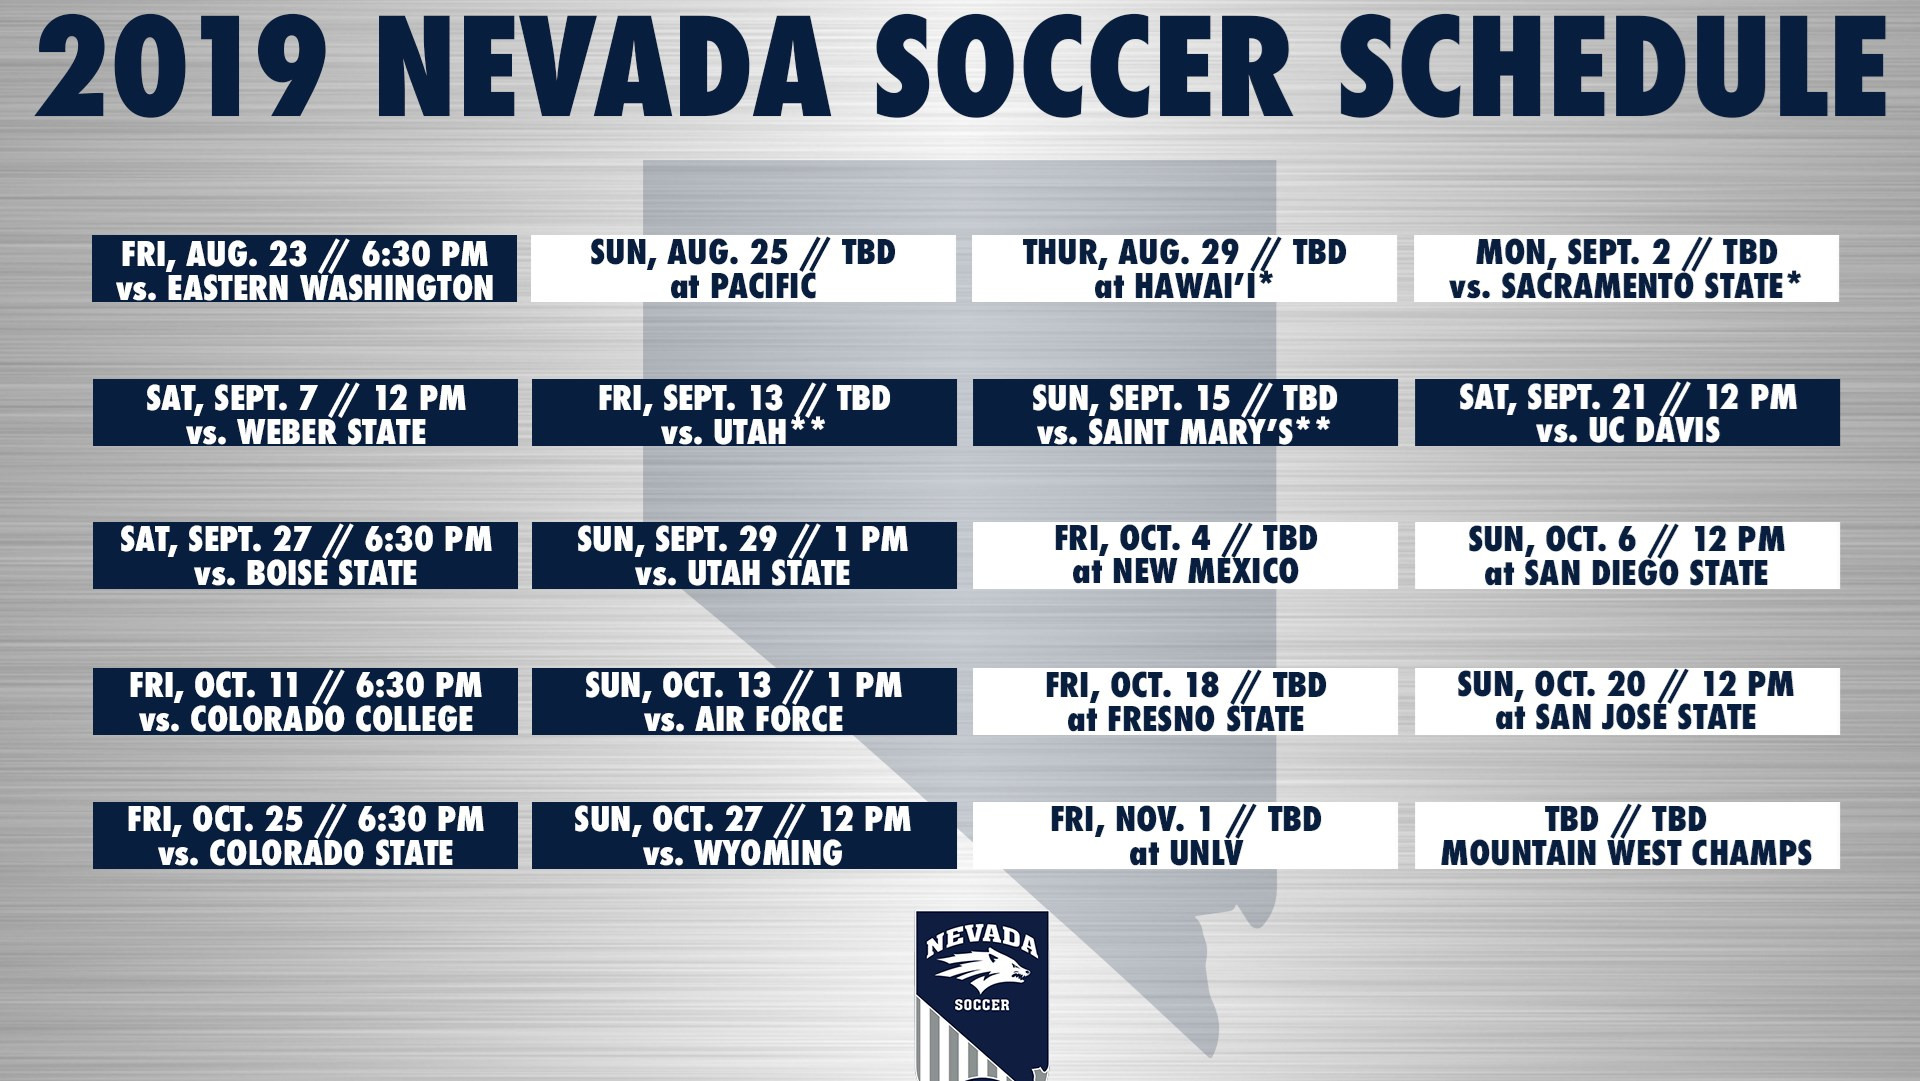 Nevada soccer announces 2019 schedule - University of Nevada